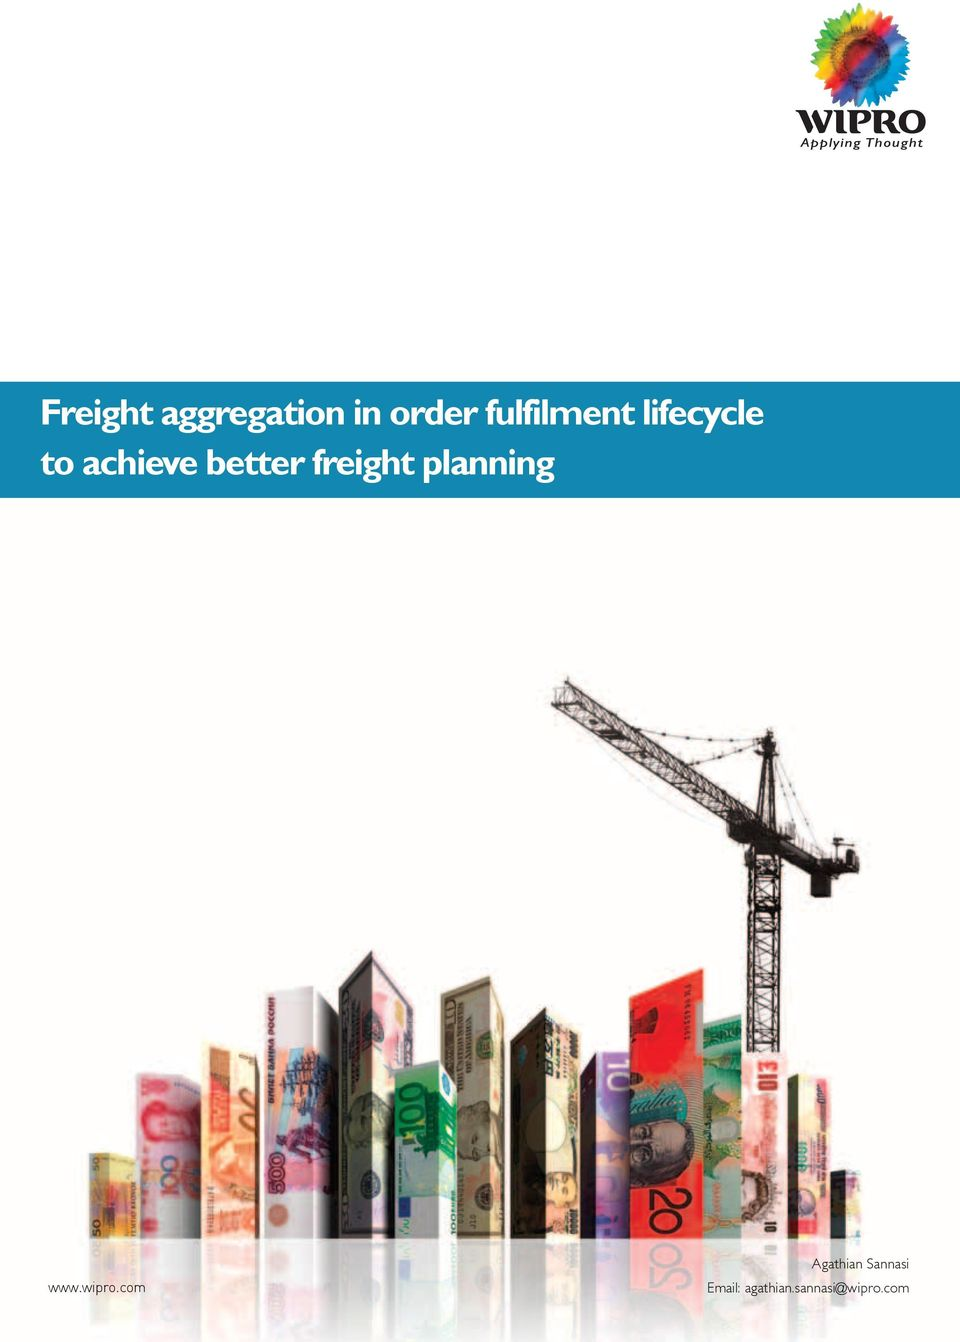 better freight planning www.wipro.